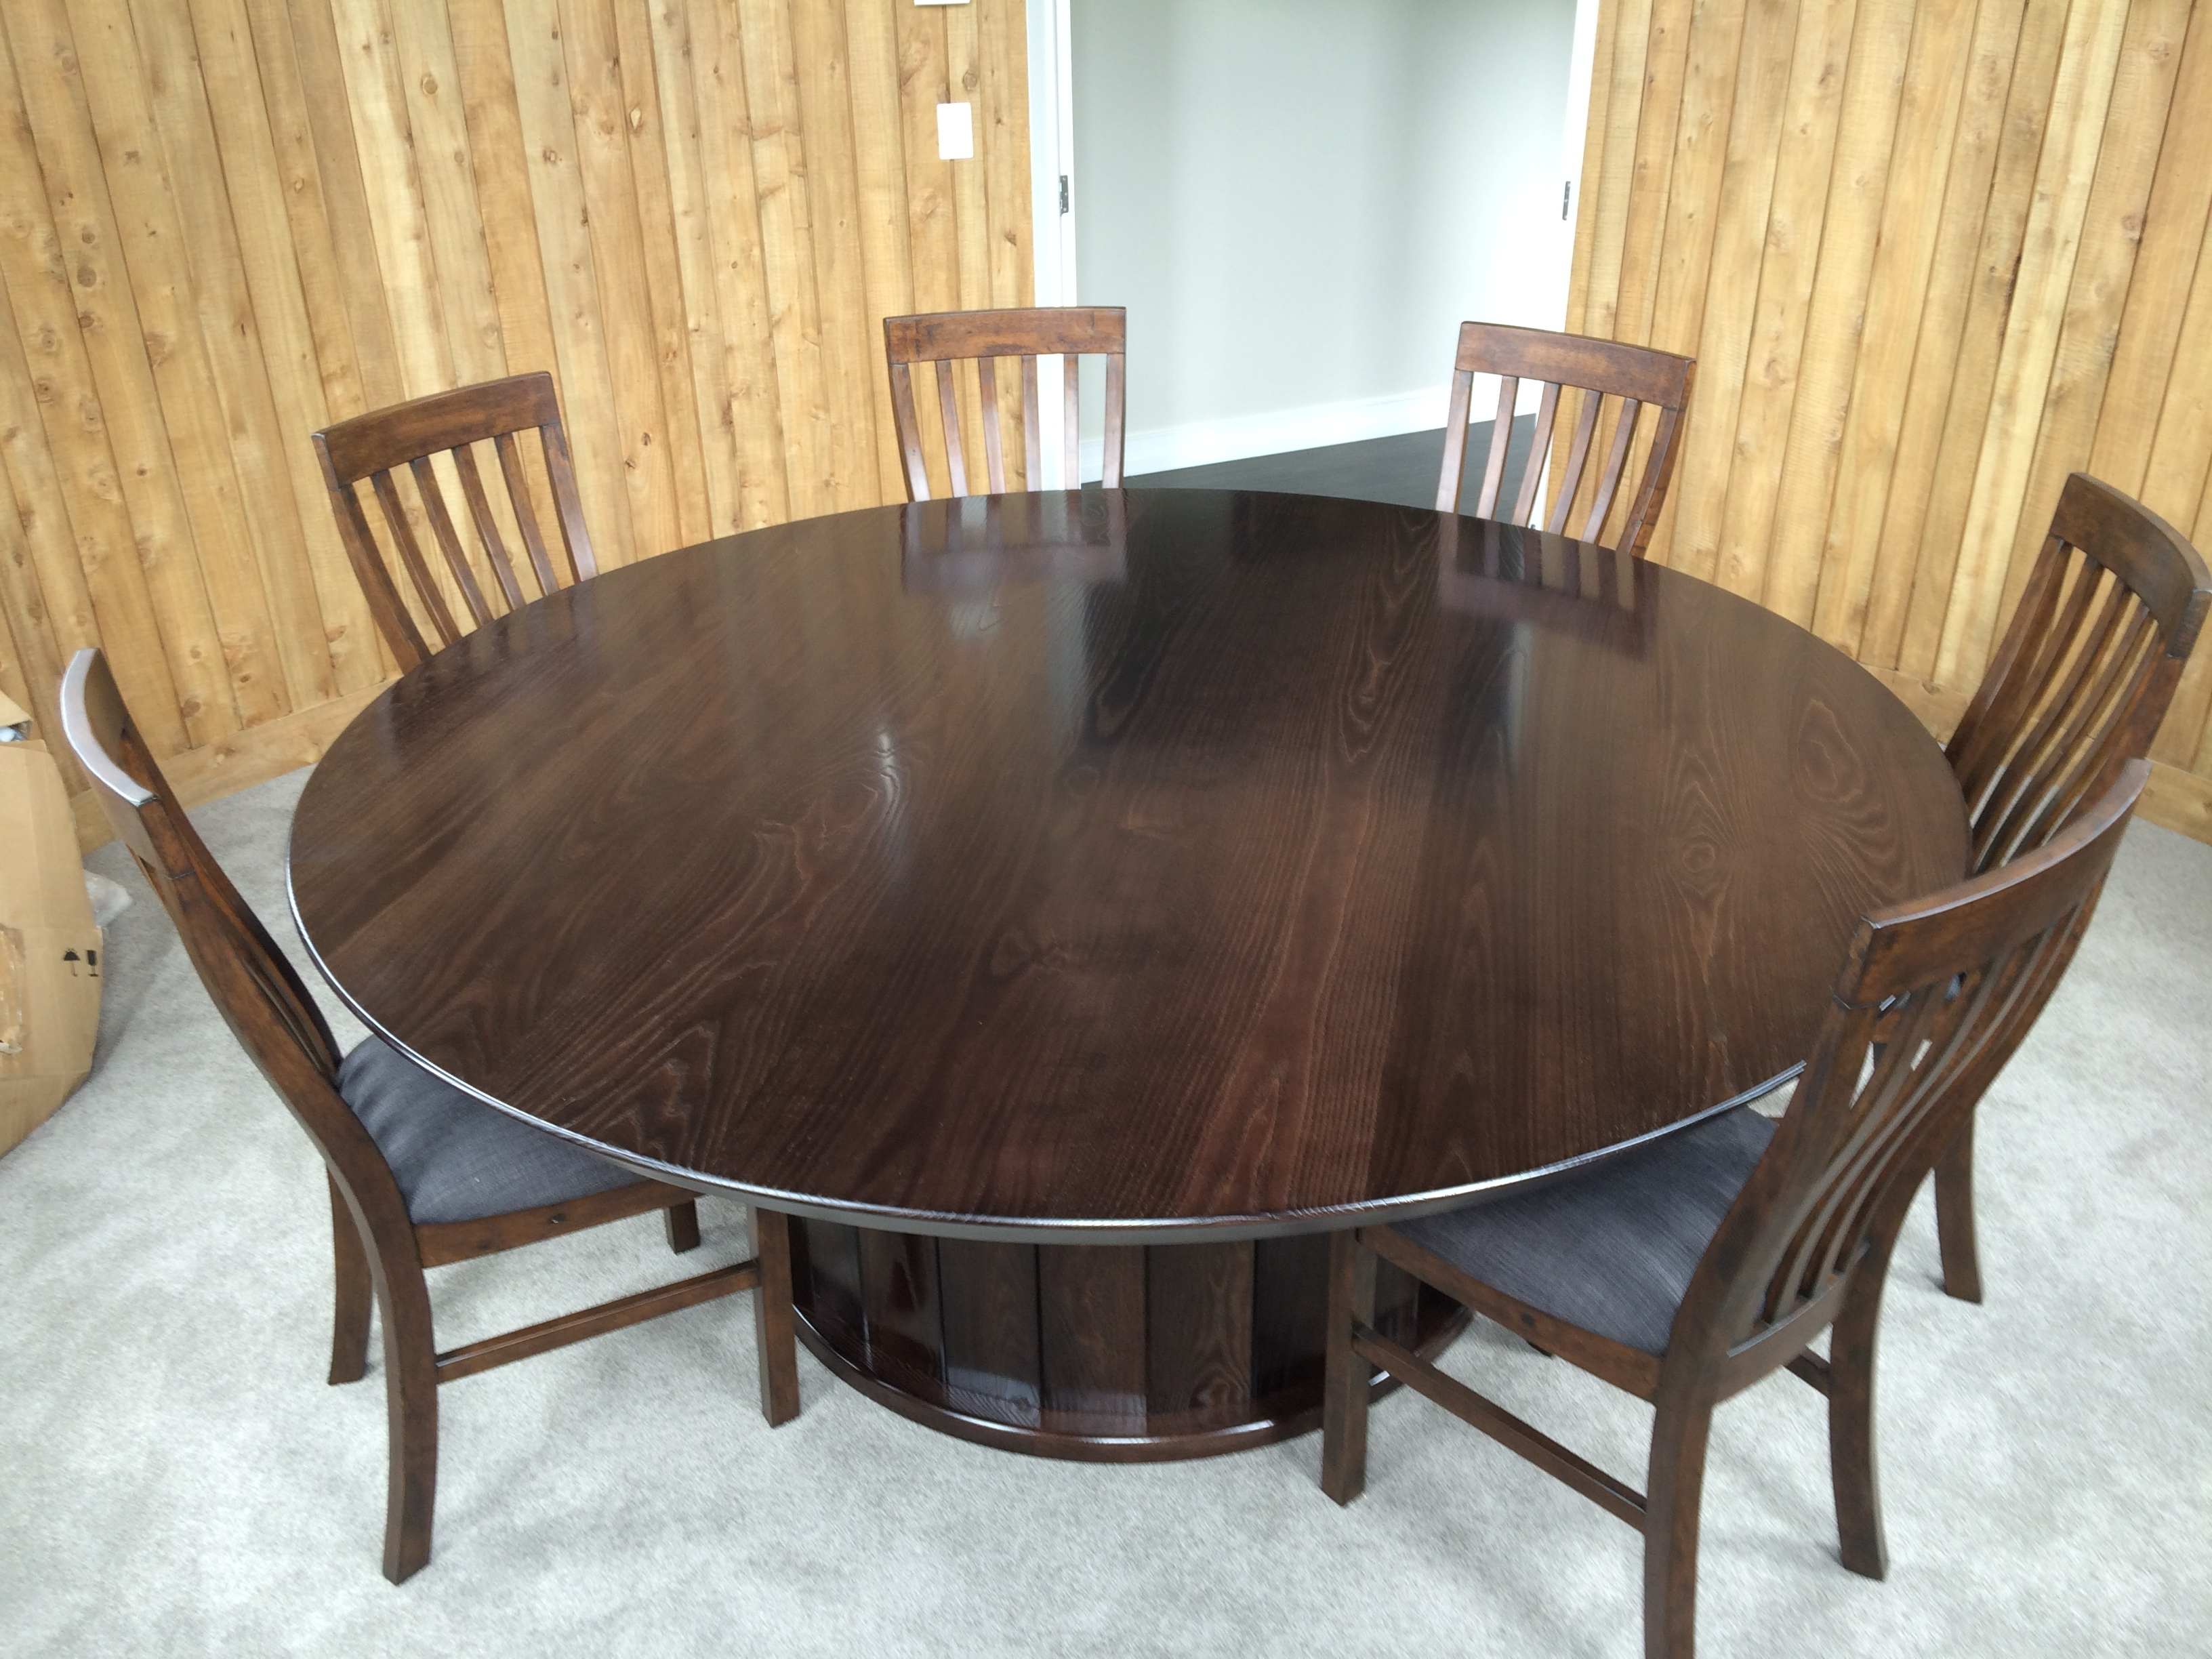 Custom Made Dining Tables & Chairs Tauranga, Hamilton, Auckland Regarding Well Known Hamilton Dining Tables (View 9 of 25)